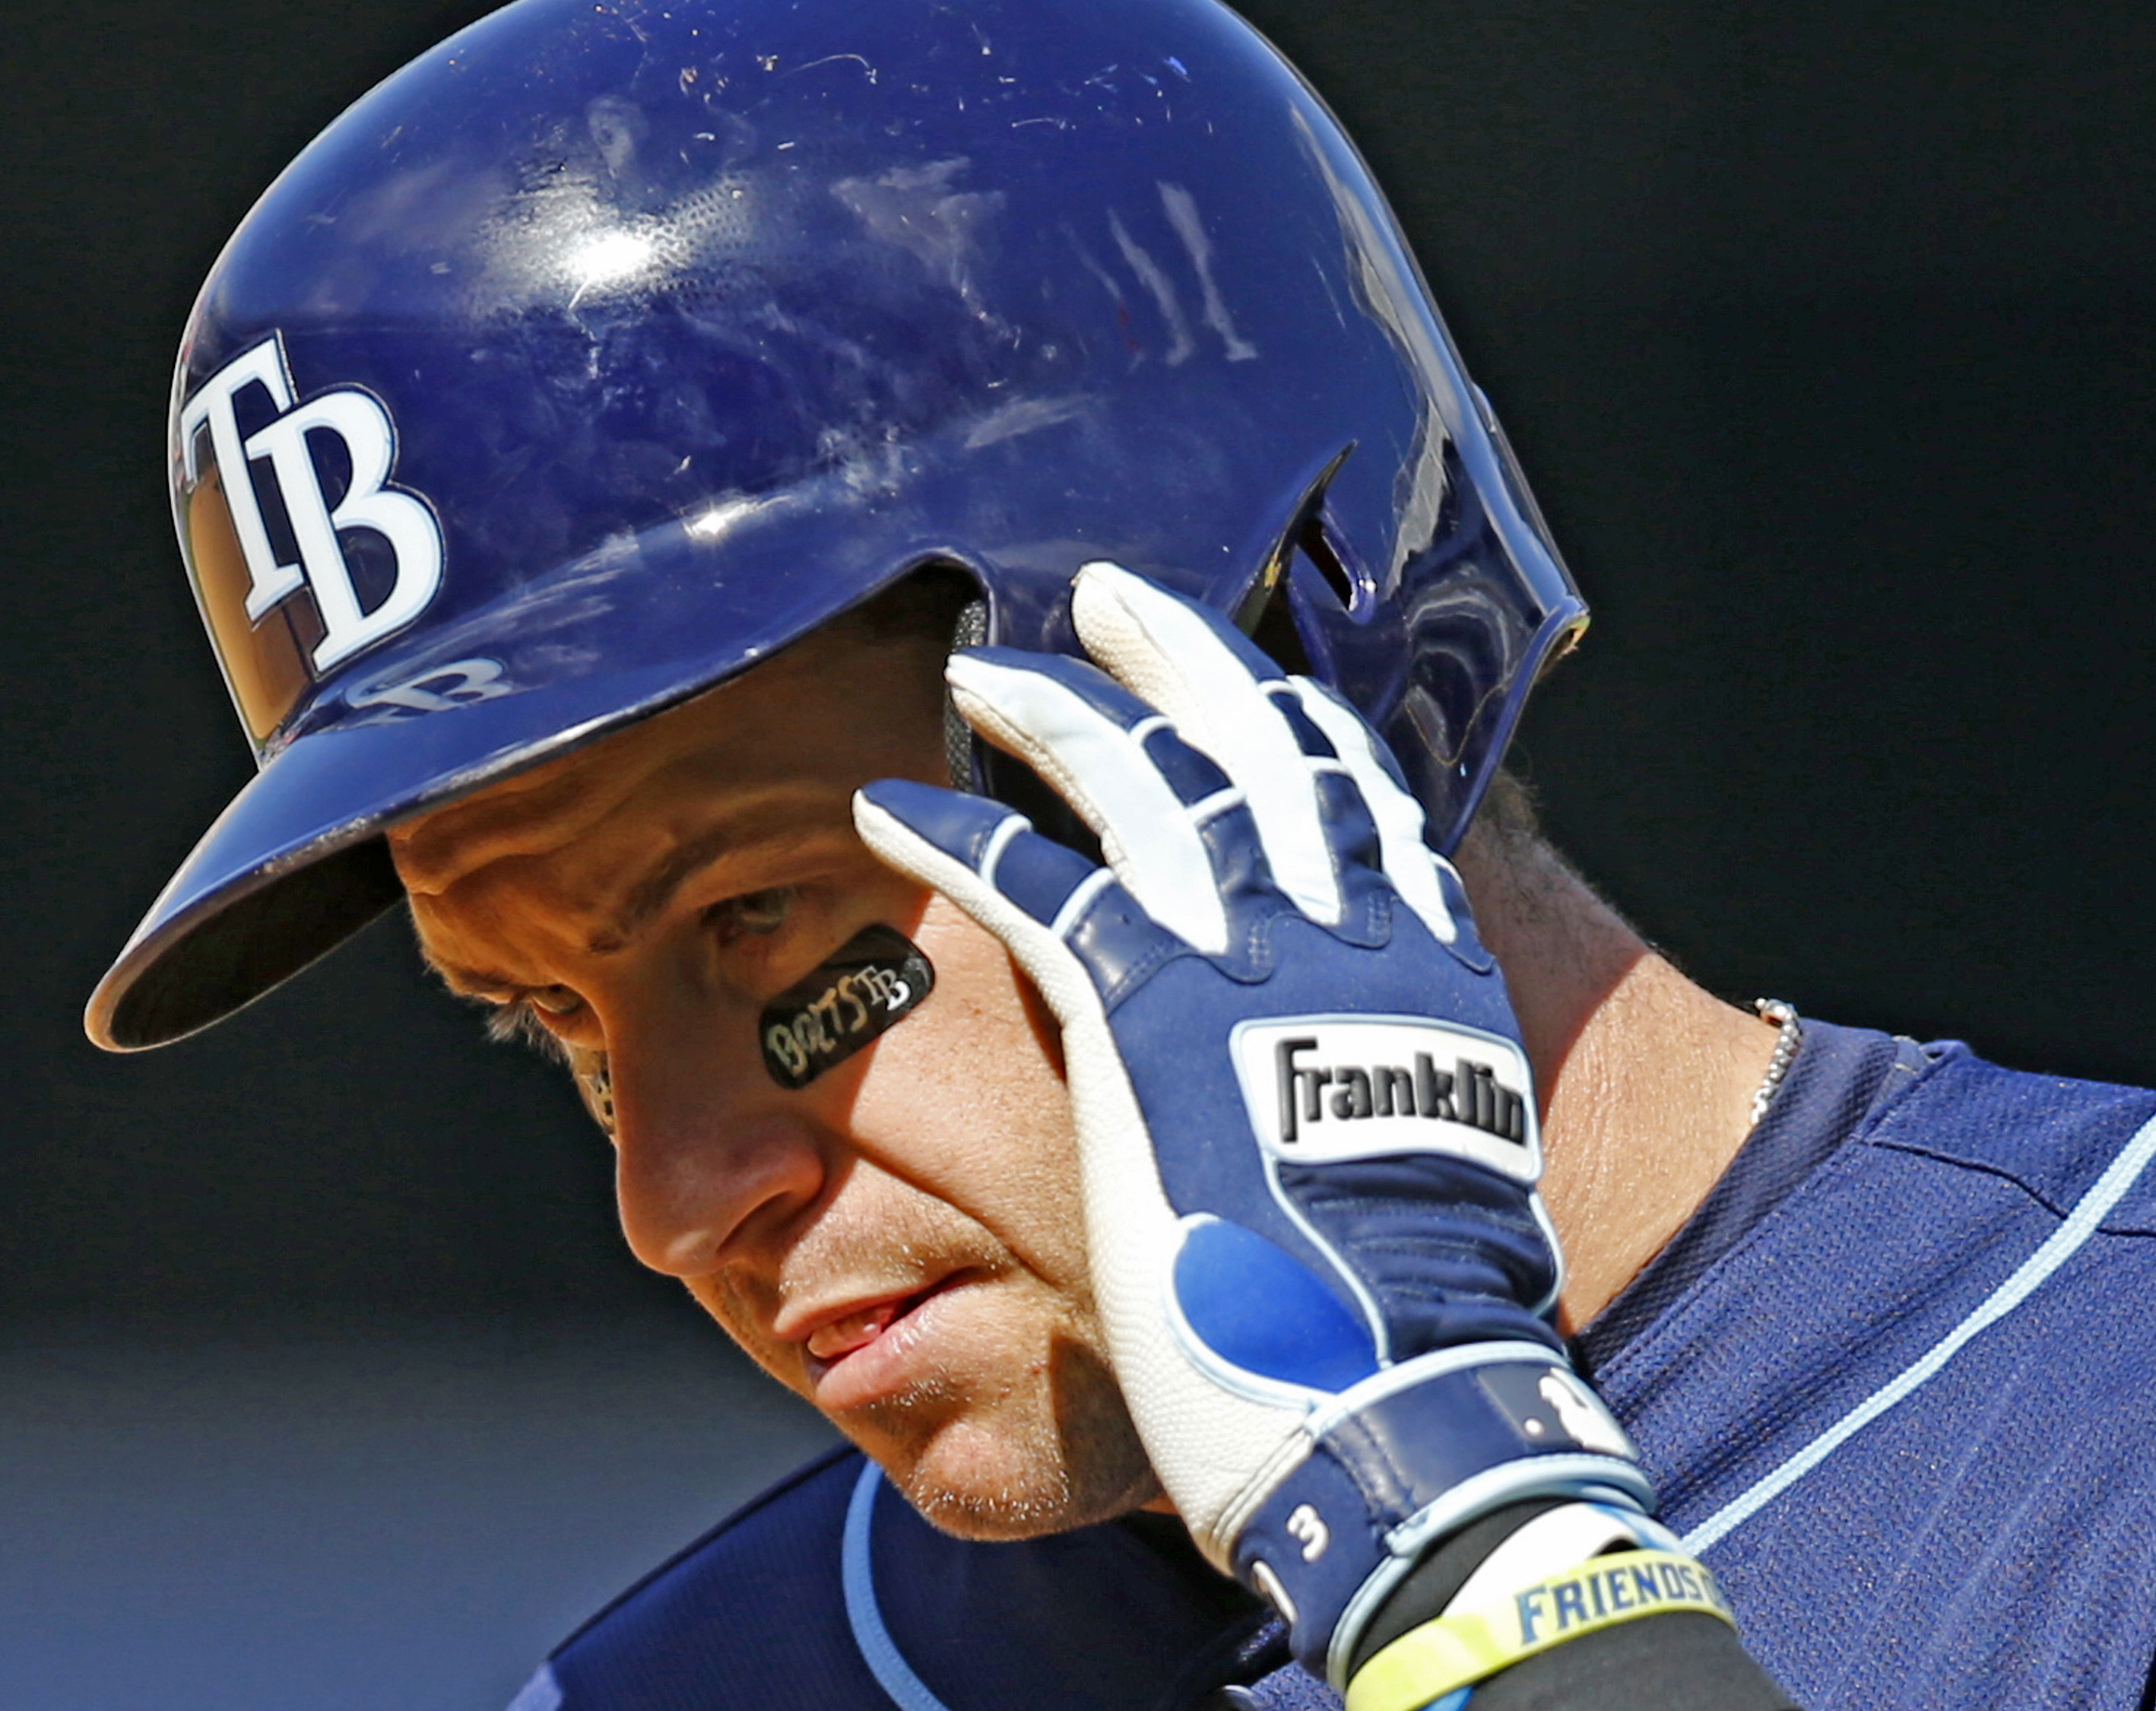 Tampa Bay Rays Evan Longoria shows eye black supporting the Tampa Bay Lightning who are in the Stanely Cup hockey playoffs, during a baseball game against the New York Yankees at Yankee Stadium in New York, Wednesday, April 29, 2015.  (AP Photo/Kathy Will